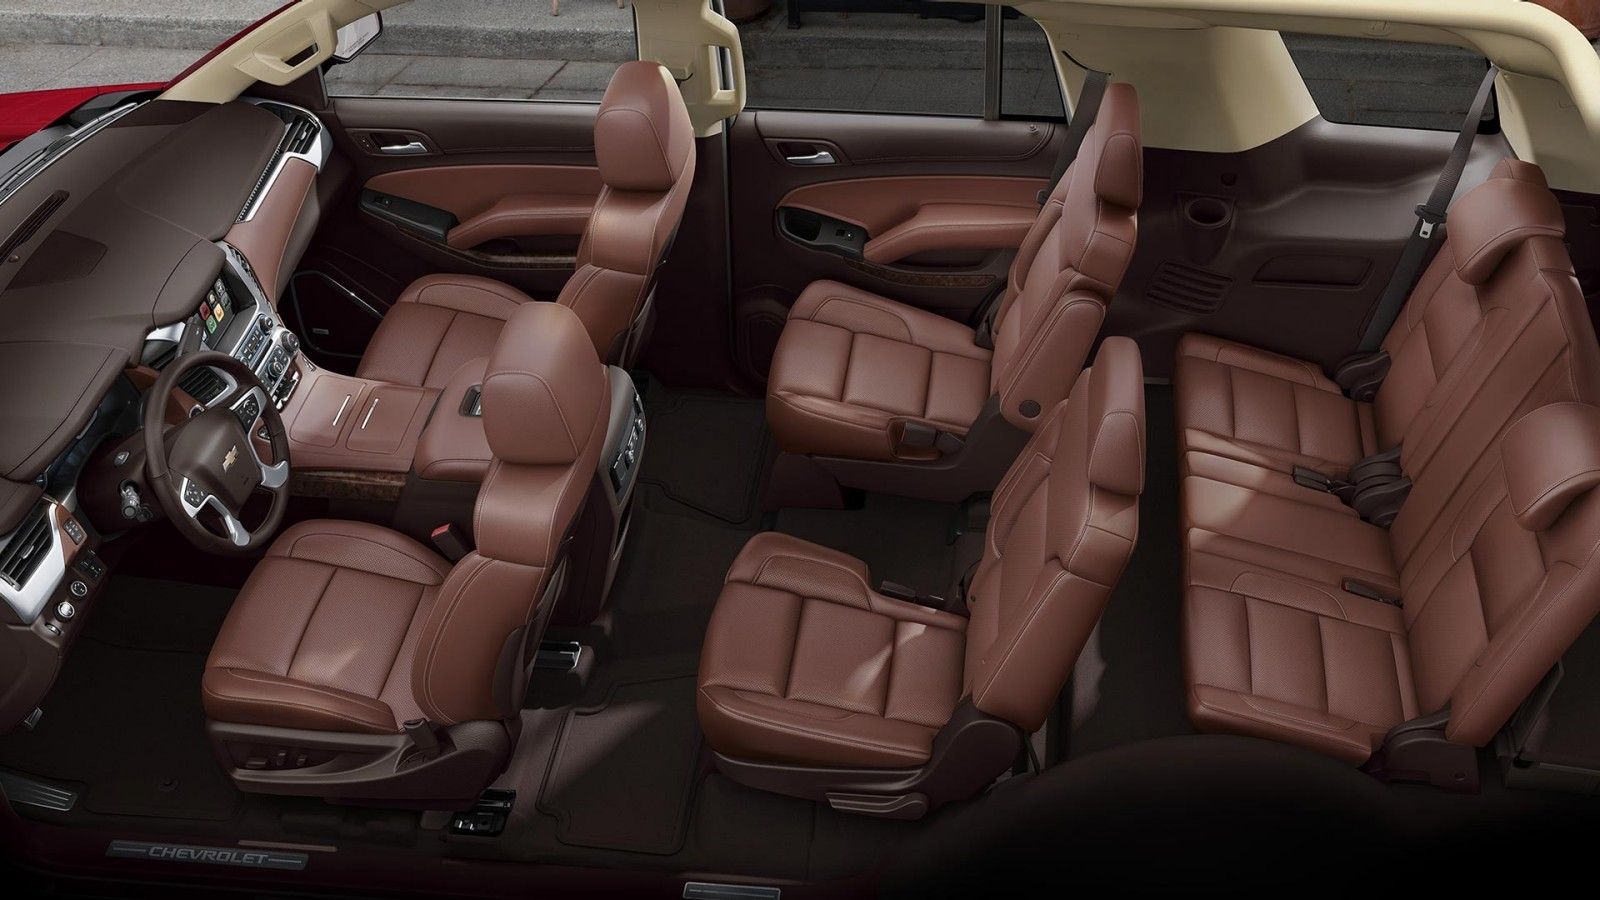 2016 Tahoe Interior Aerial View